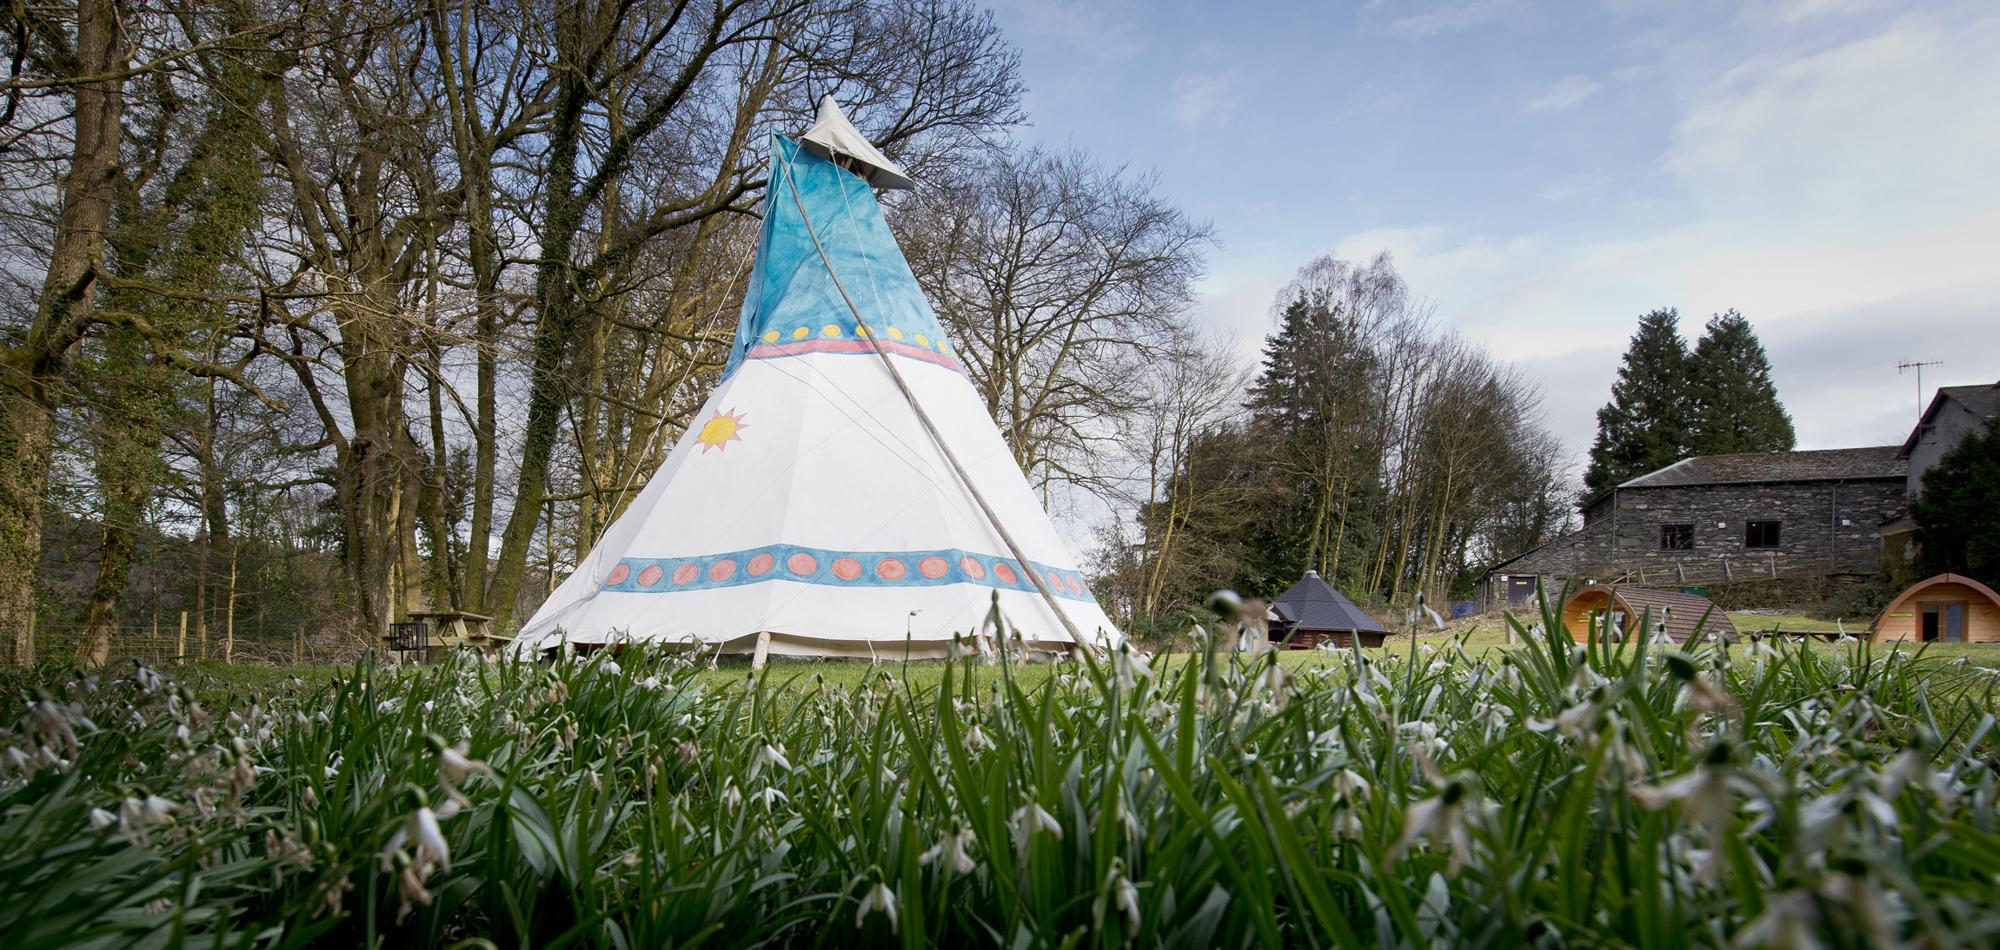 YHA Glamping – Glampsites in the UK - Cool Places to Stay in the UK